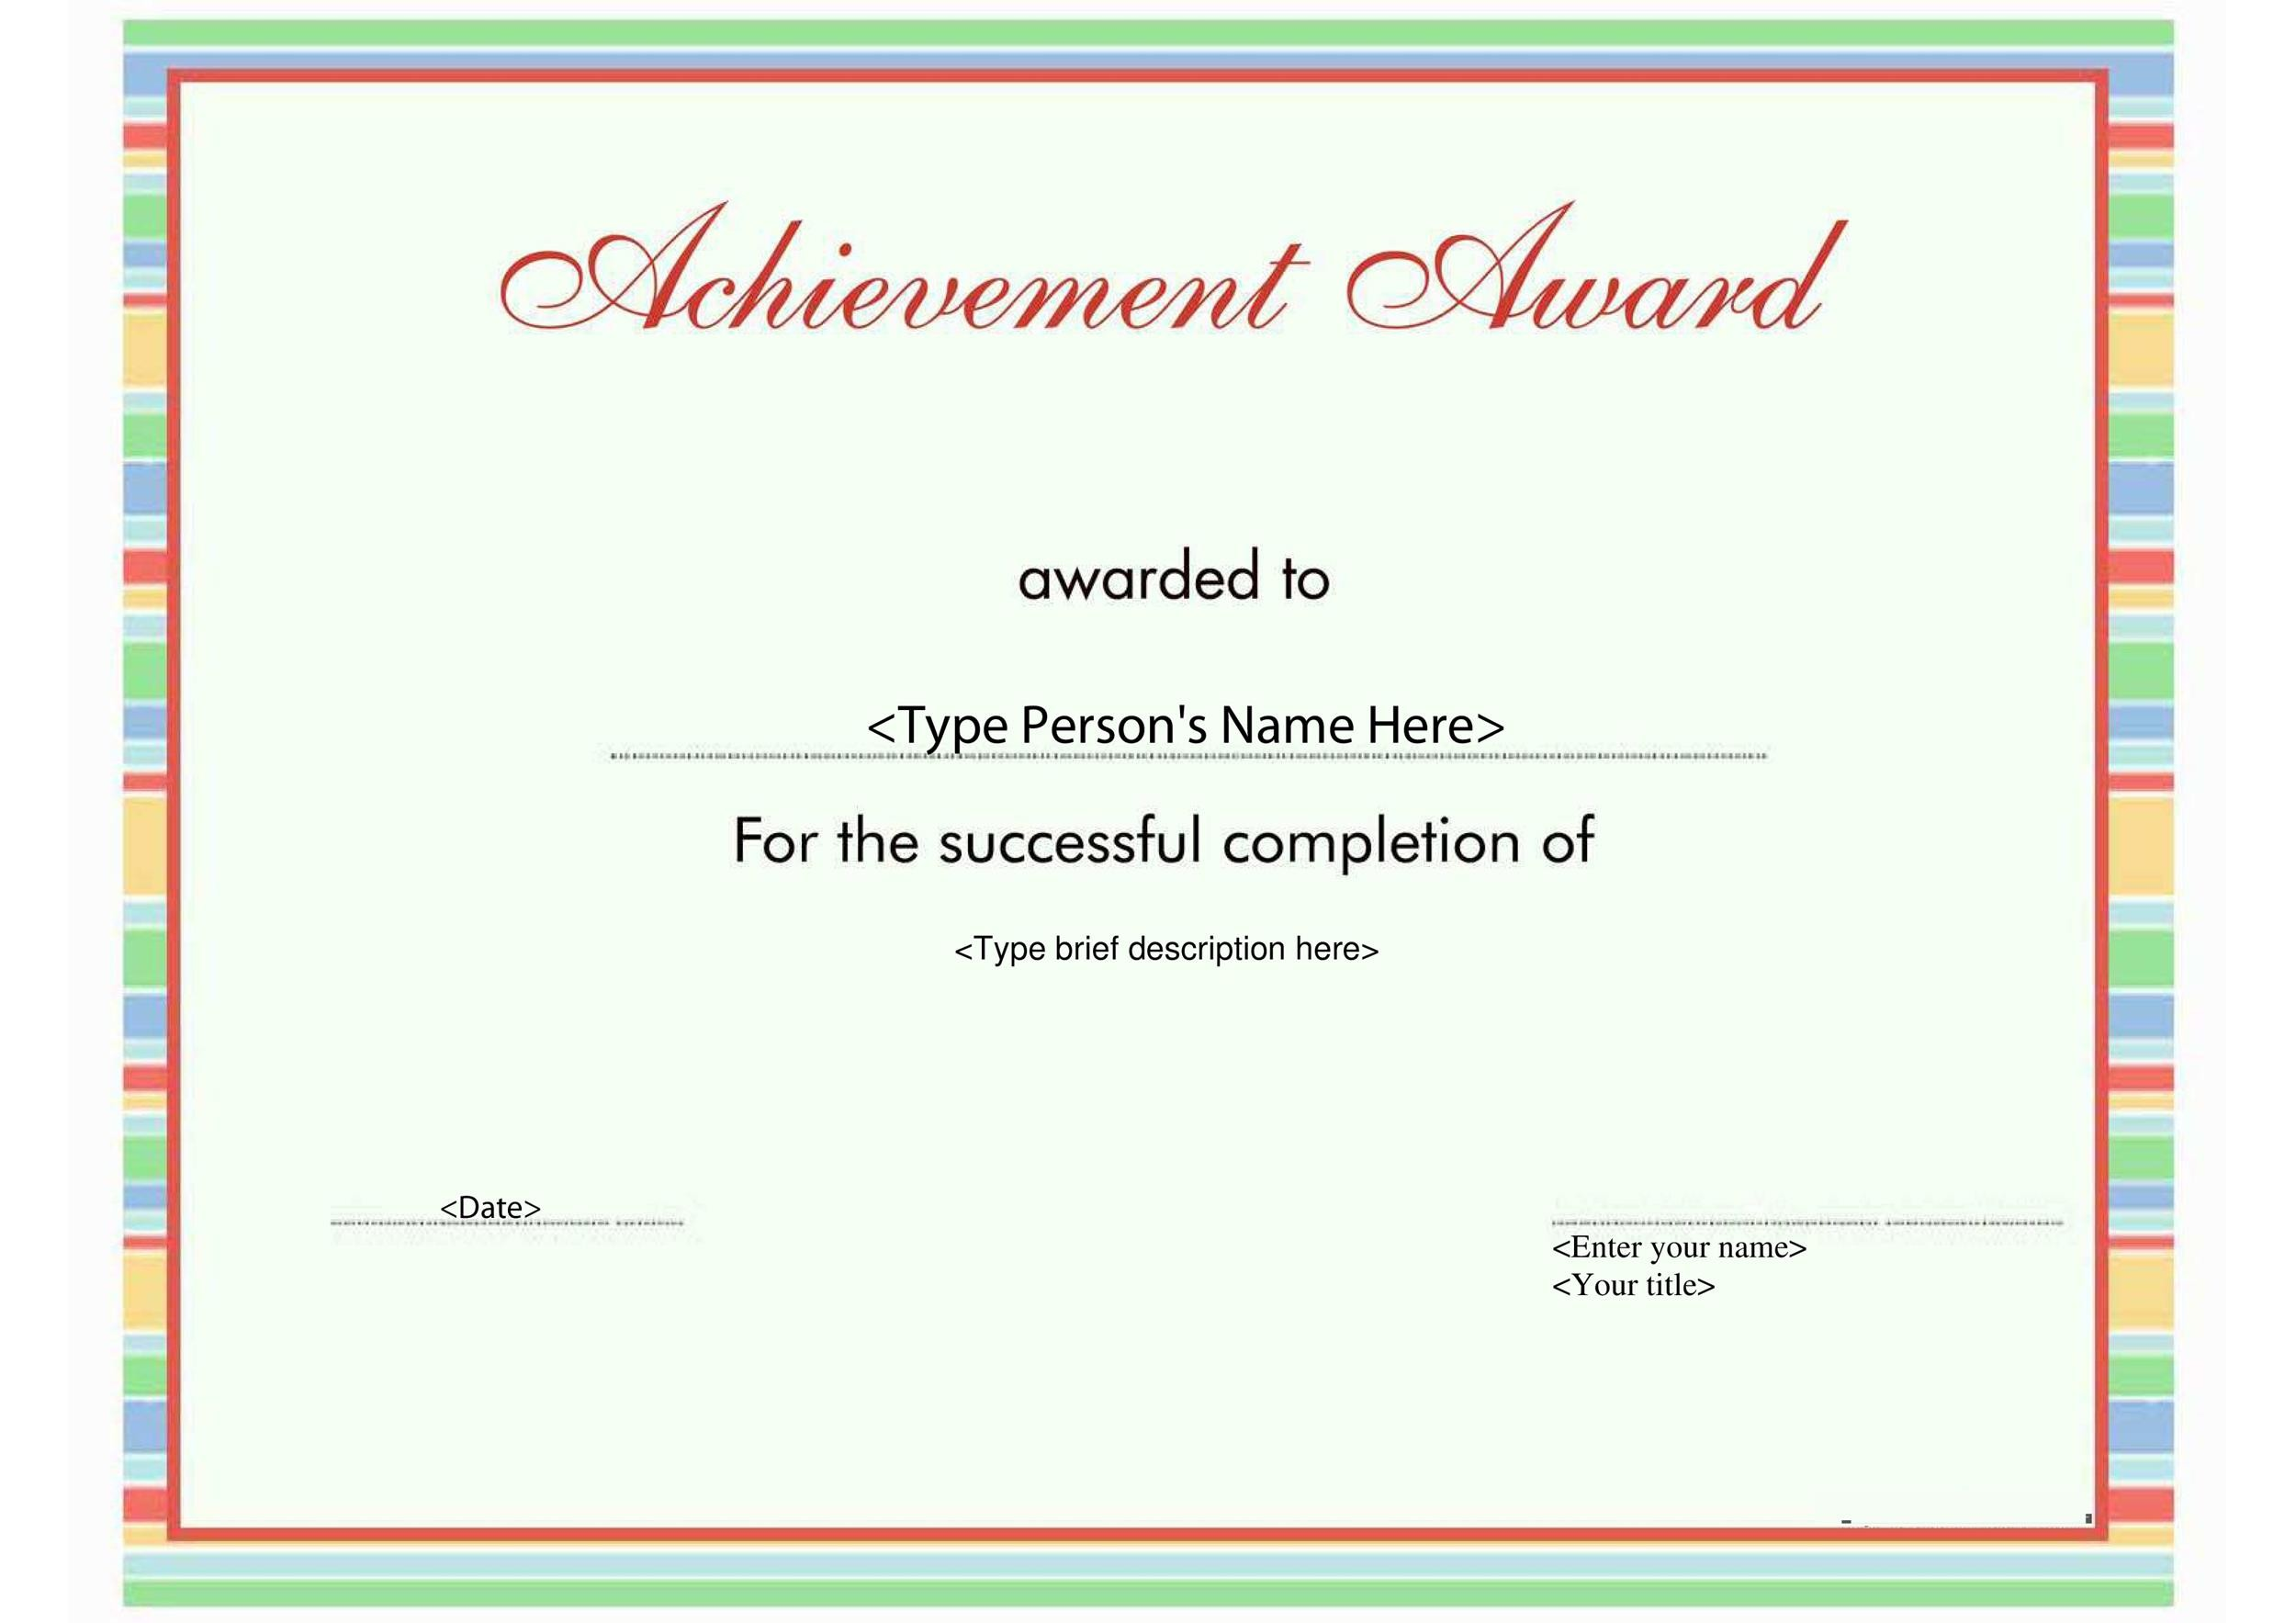 Help With Award Certificate Wording: Examples & Free Resources